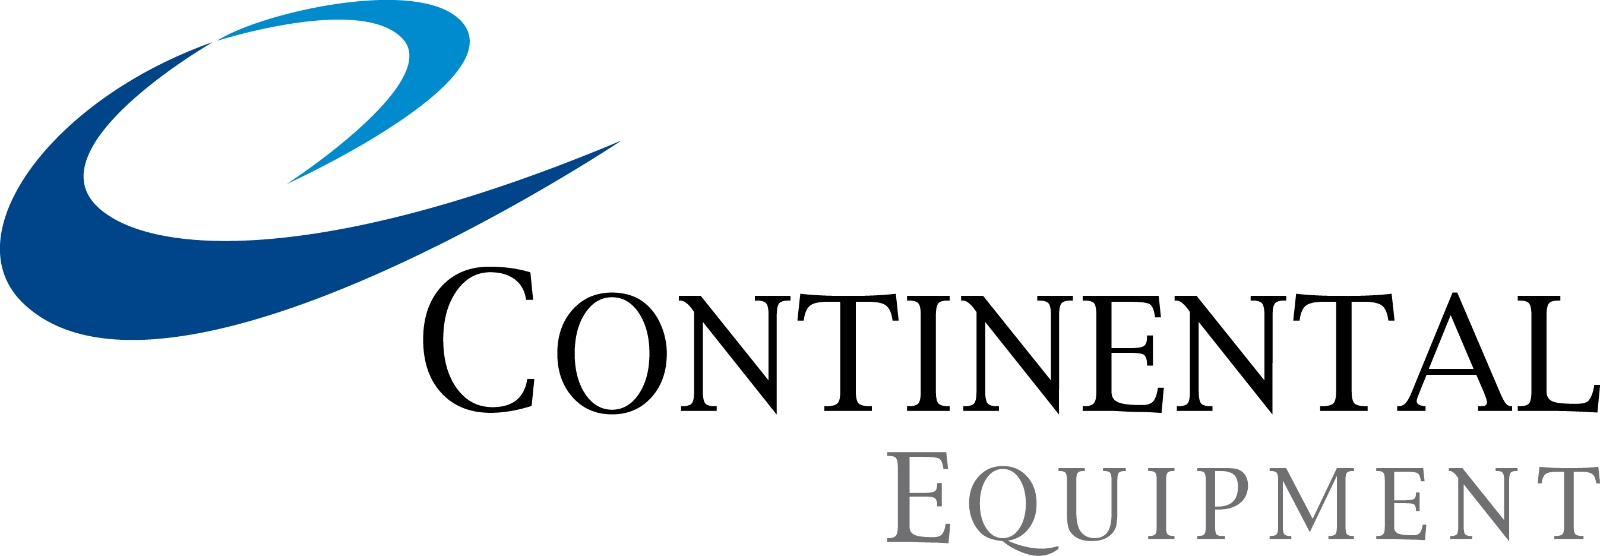 CONTINENTAL EQUIPMENT PTE LTD